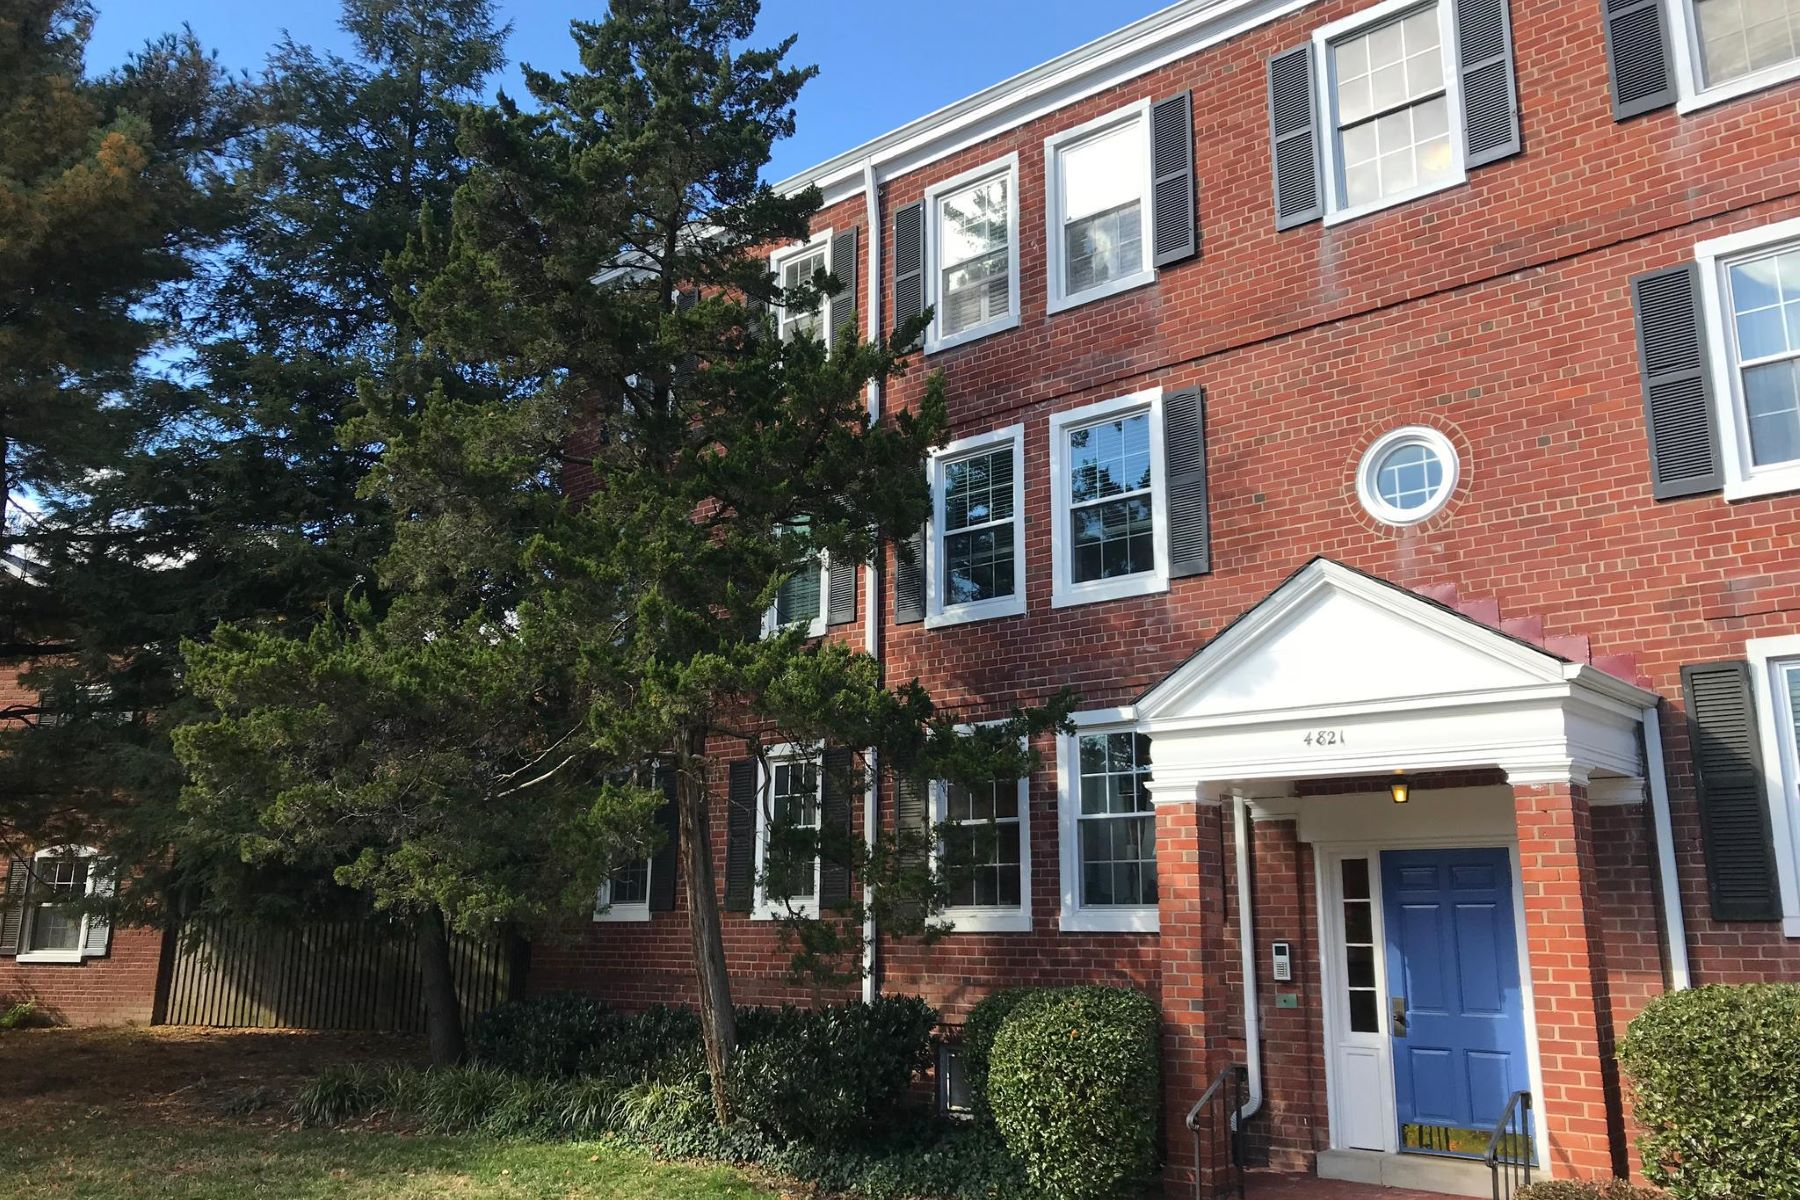 Other Residential for Rent at 4821 31st St S #c1 4821 31st St S #c1 Arlington, Virginia 22206 United States